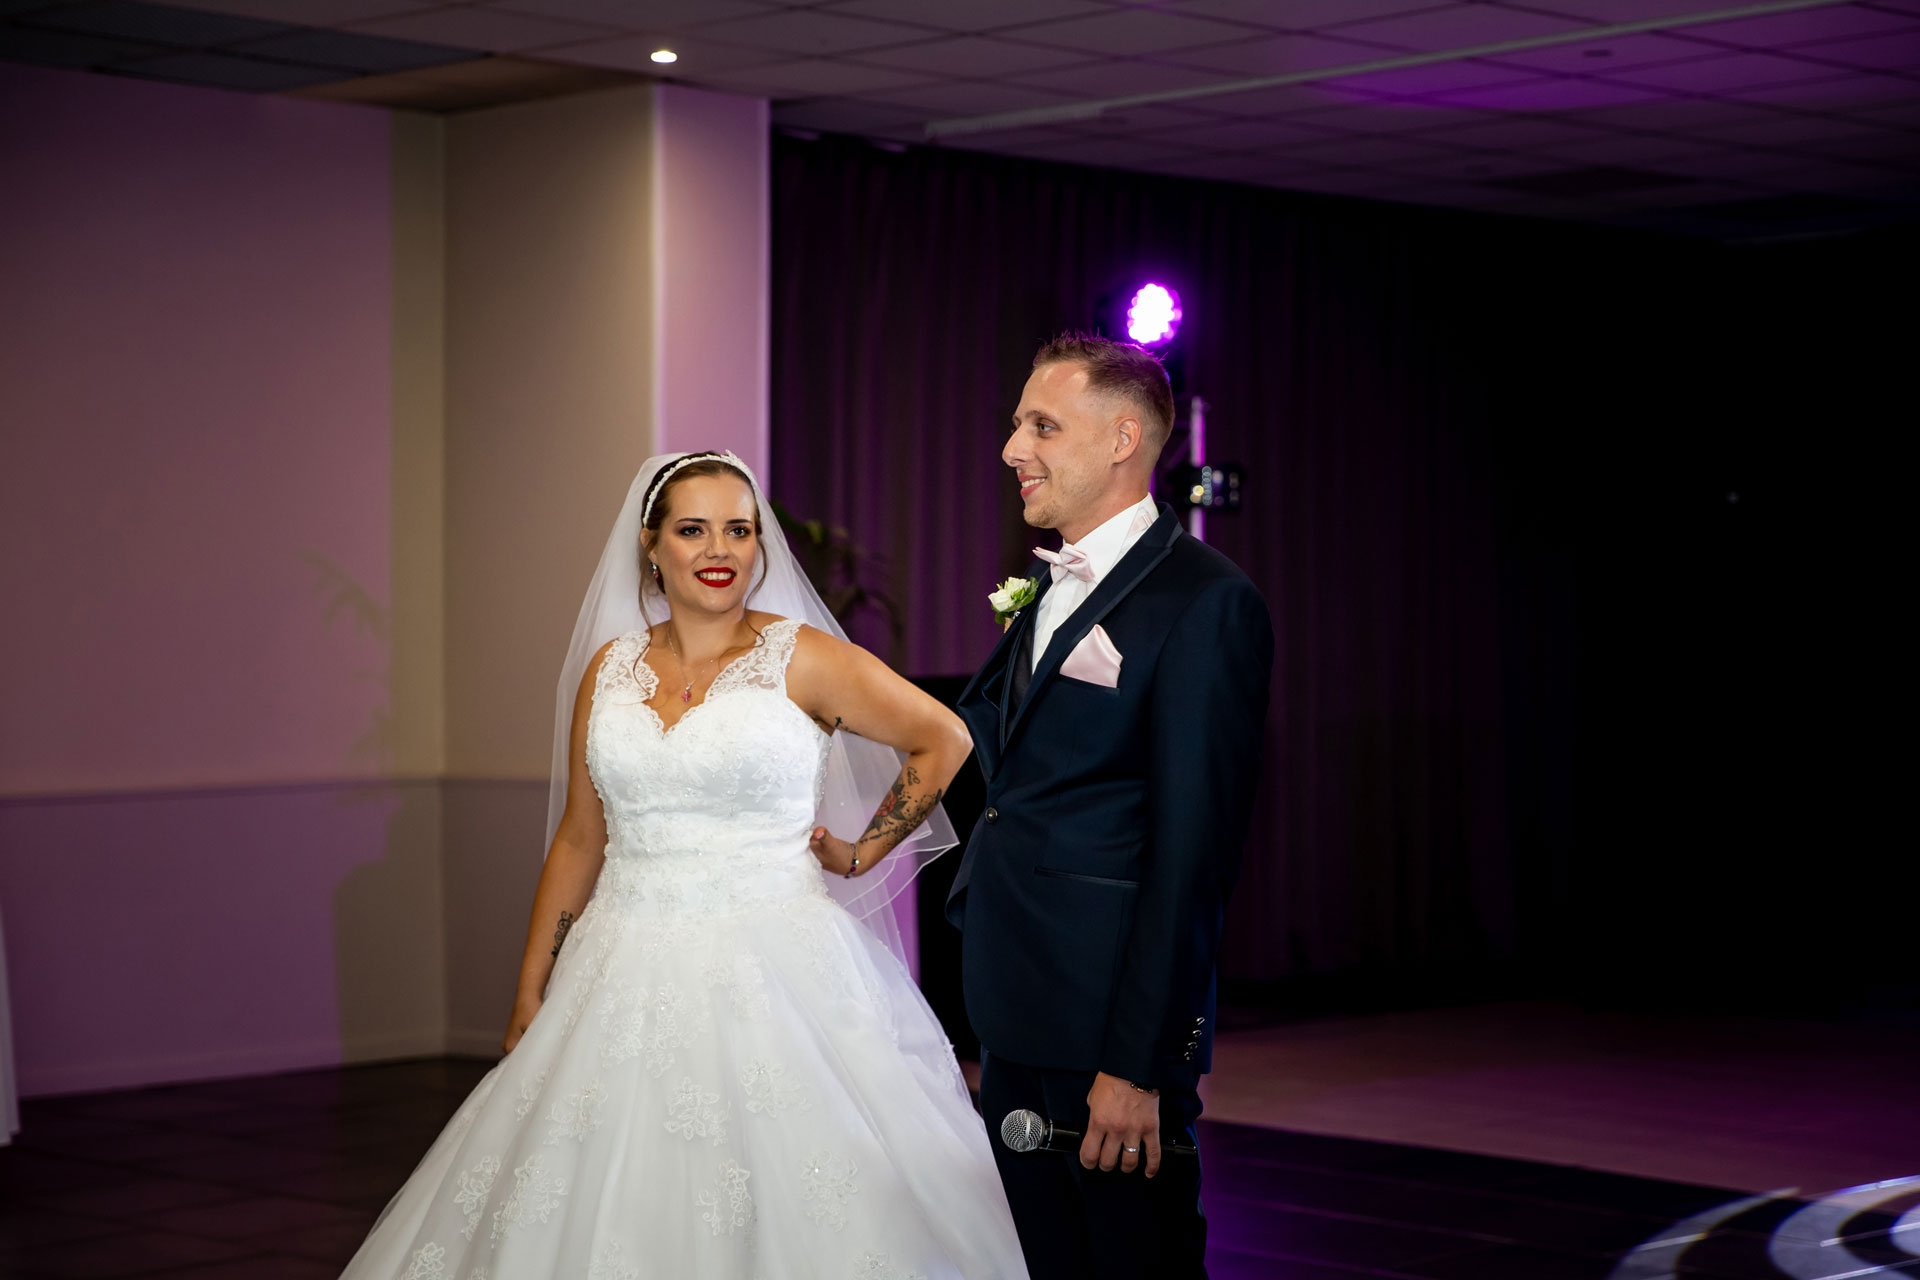 20200912-mariage-ophelie-alexandre-076